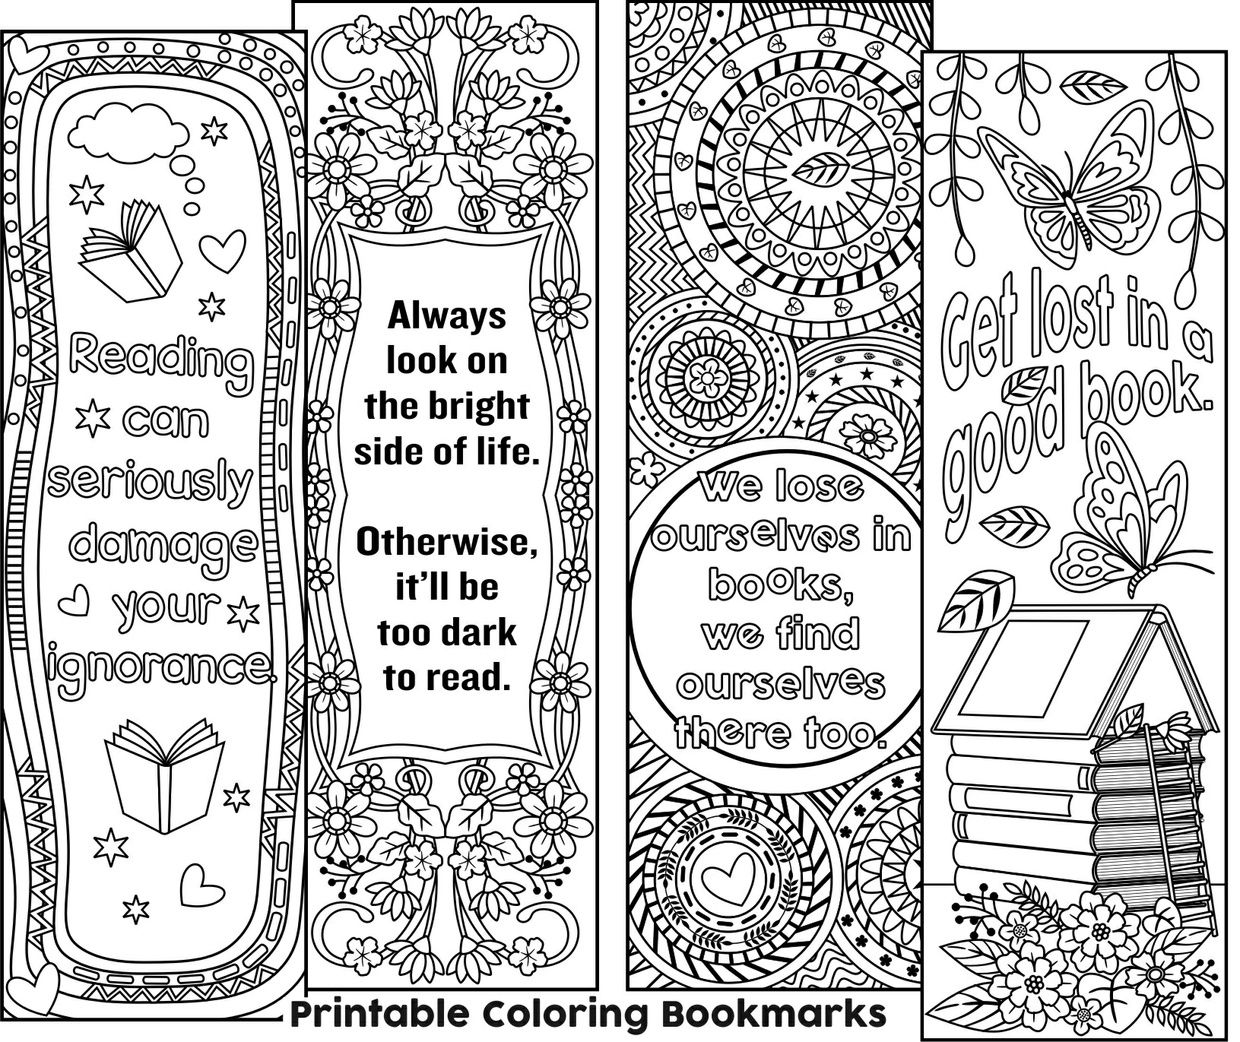 Printable Coloring Bookmarks 1 coloring bookmarks Coloring